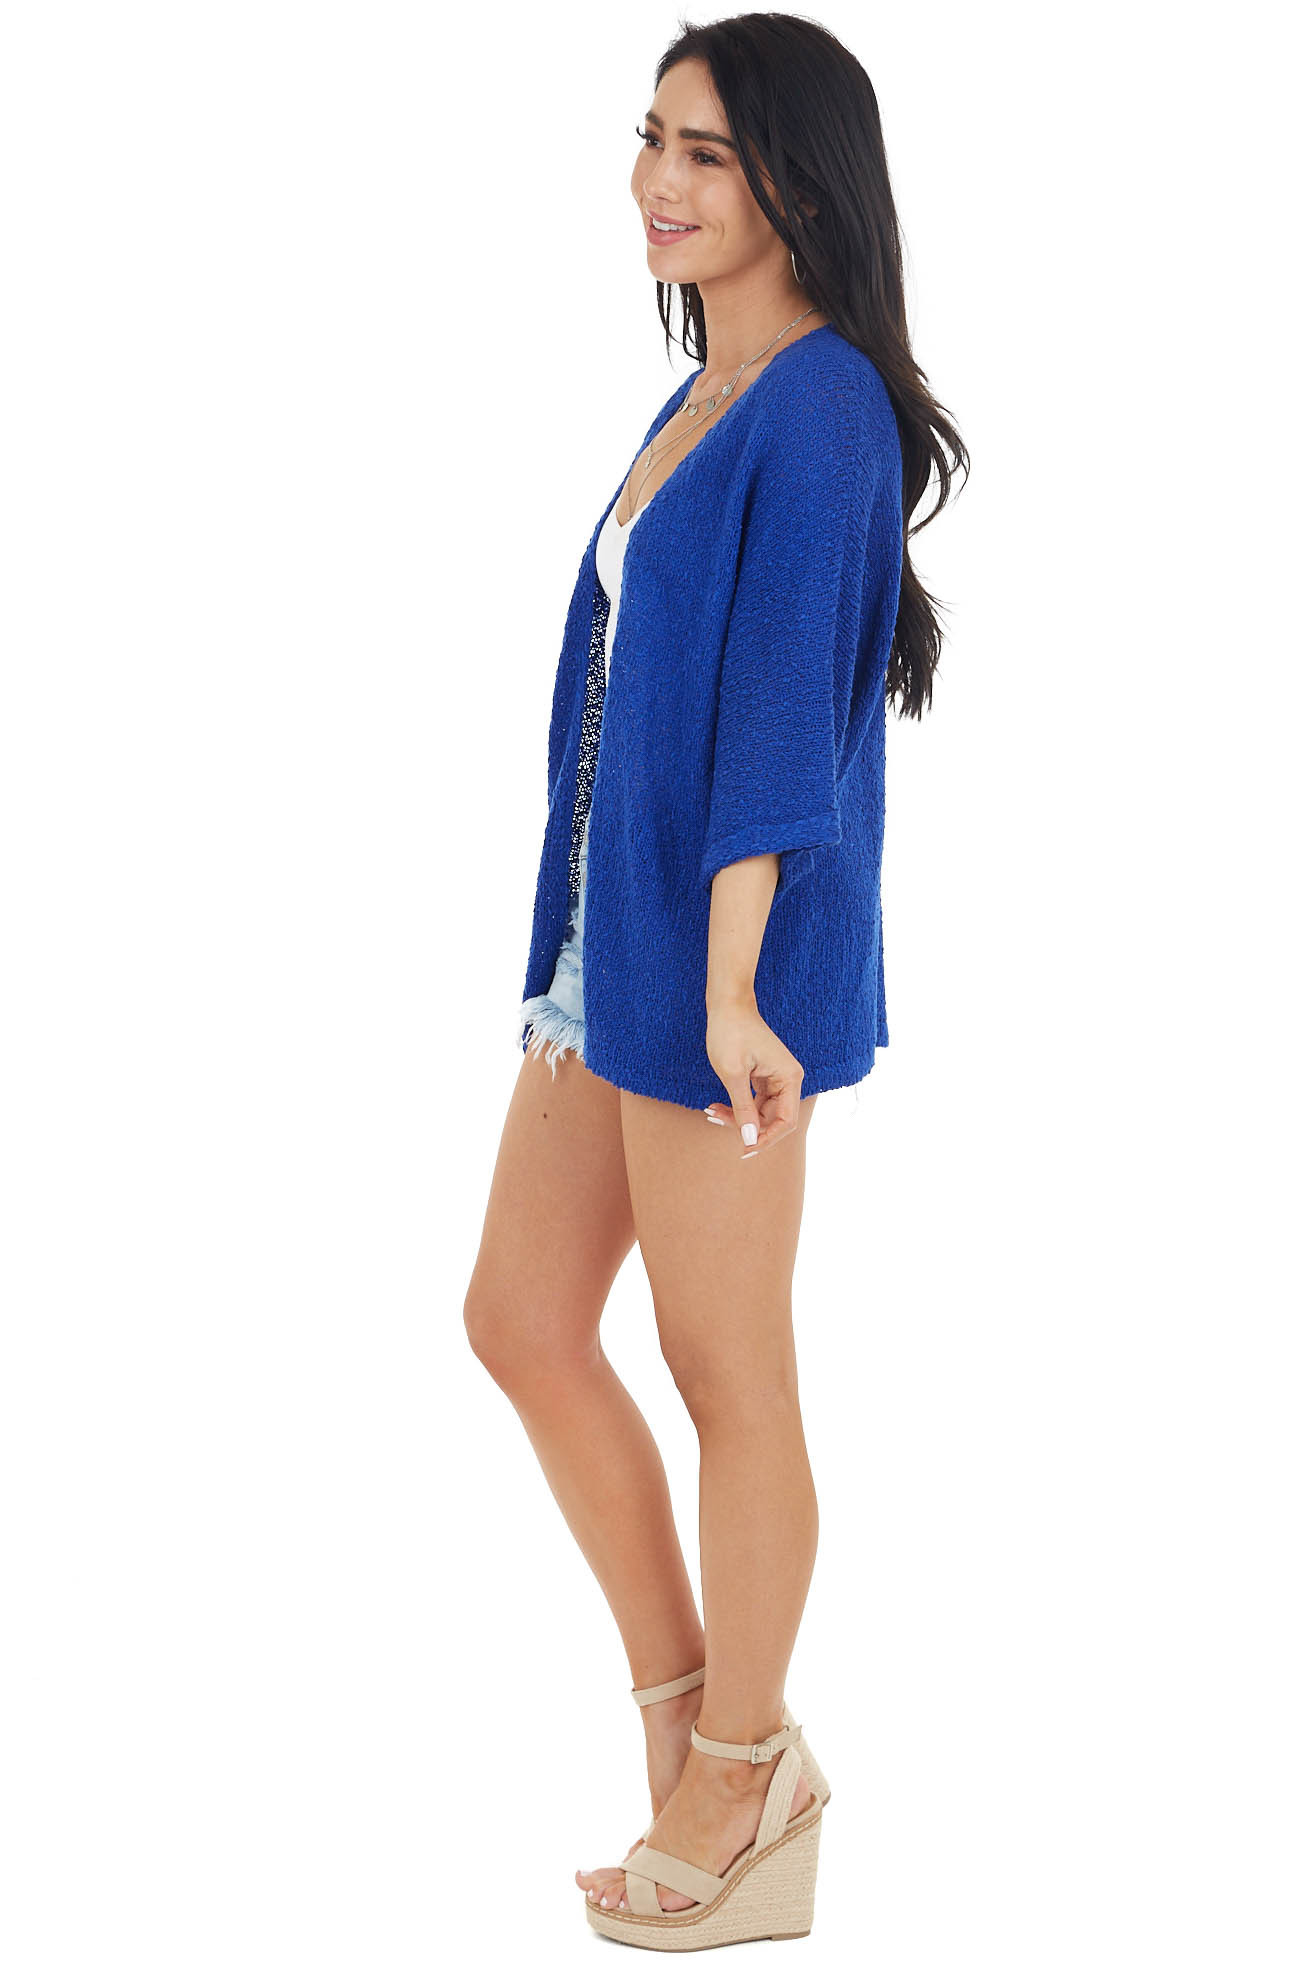 Royal Blue Textured Cardigan with 3/4 Length Cuffed Sleeves